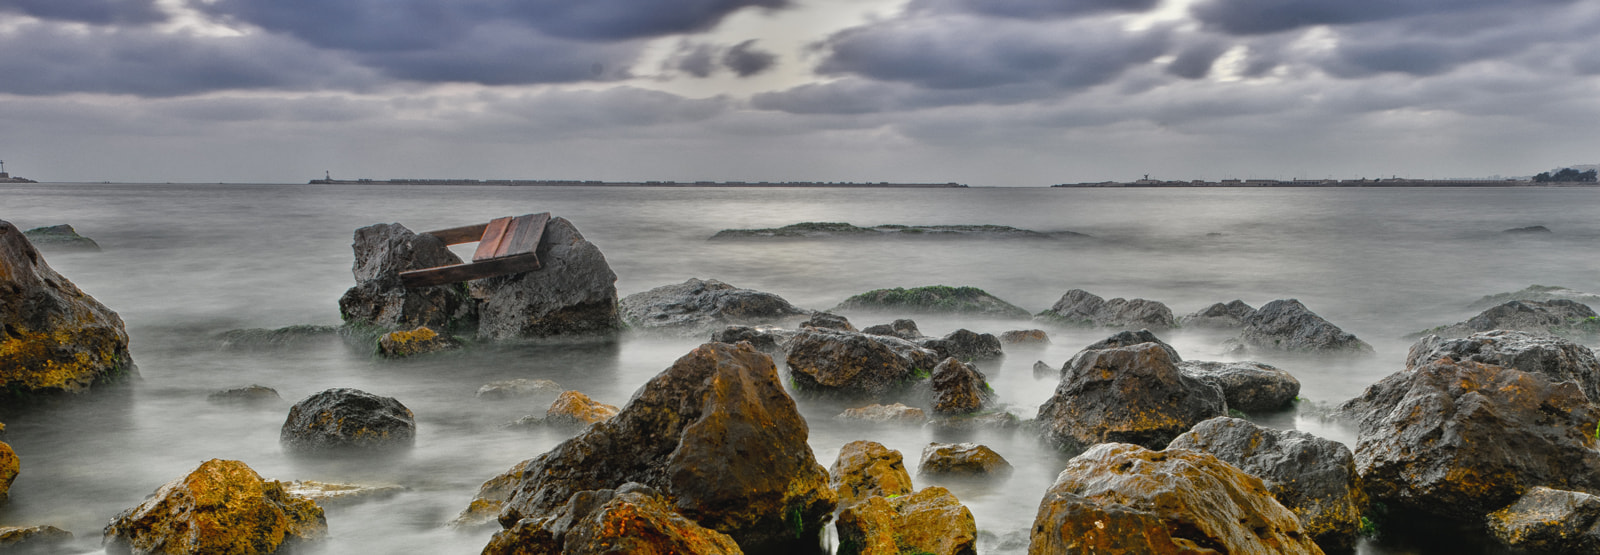 Photograph Overcast Pano by Mohamed Attef on 500px